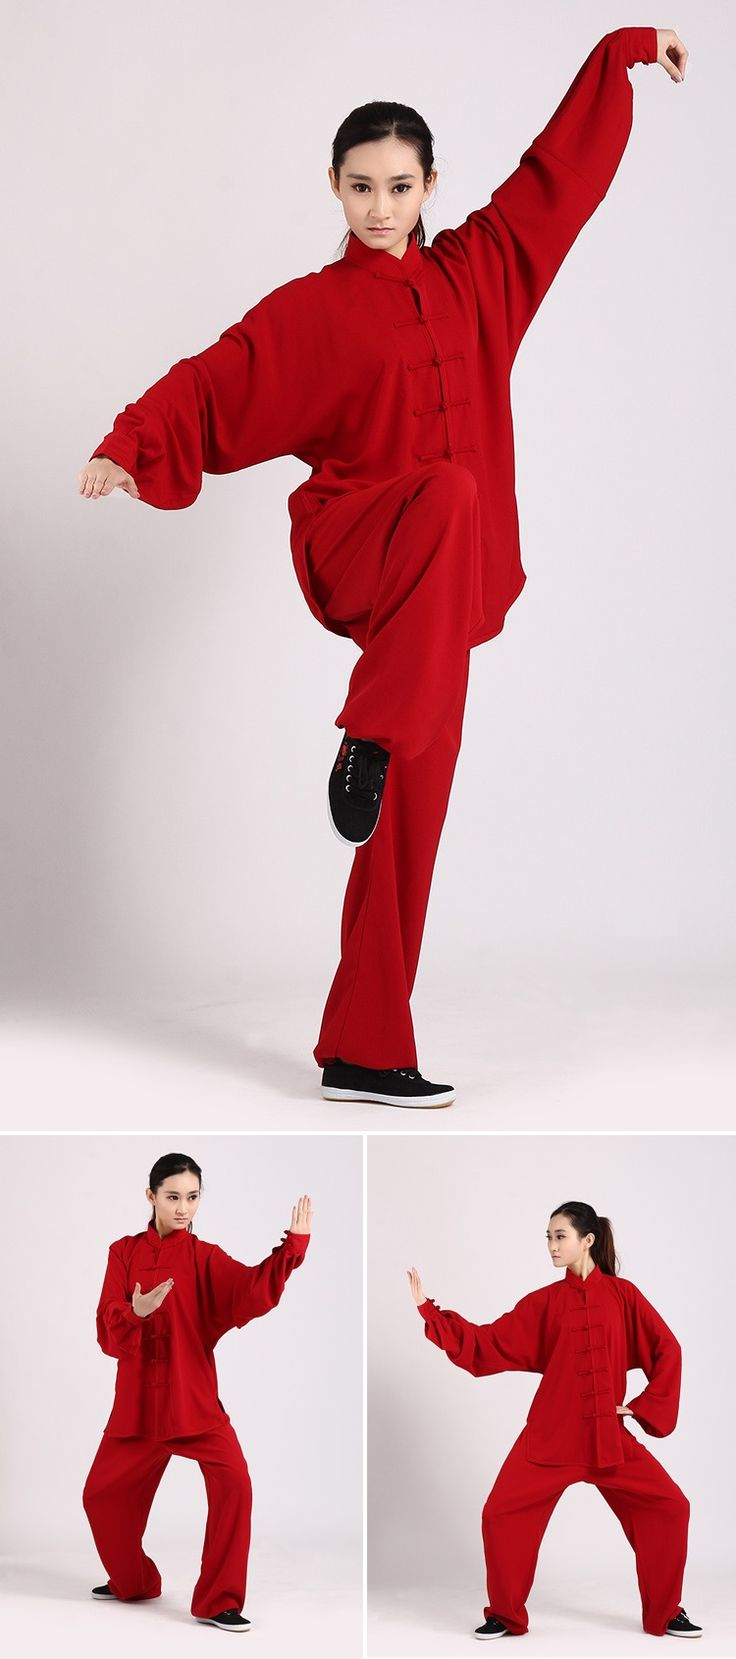 Now, tell you a good news. Our shop sales  Tai Chi T-shirts, Tai Chi T-shirts and tai chi clothing uniform and so on.  http://www.icnbuys.com/tai-chi-clothing-uniform-women-red-linen.html